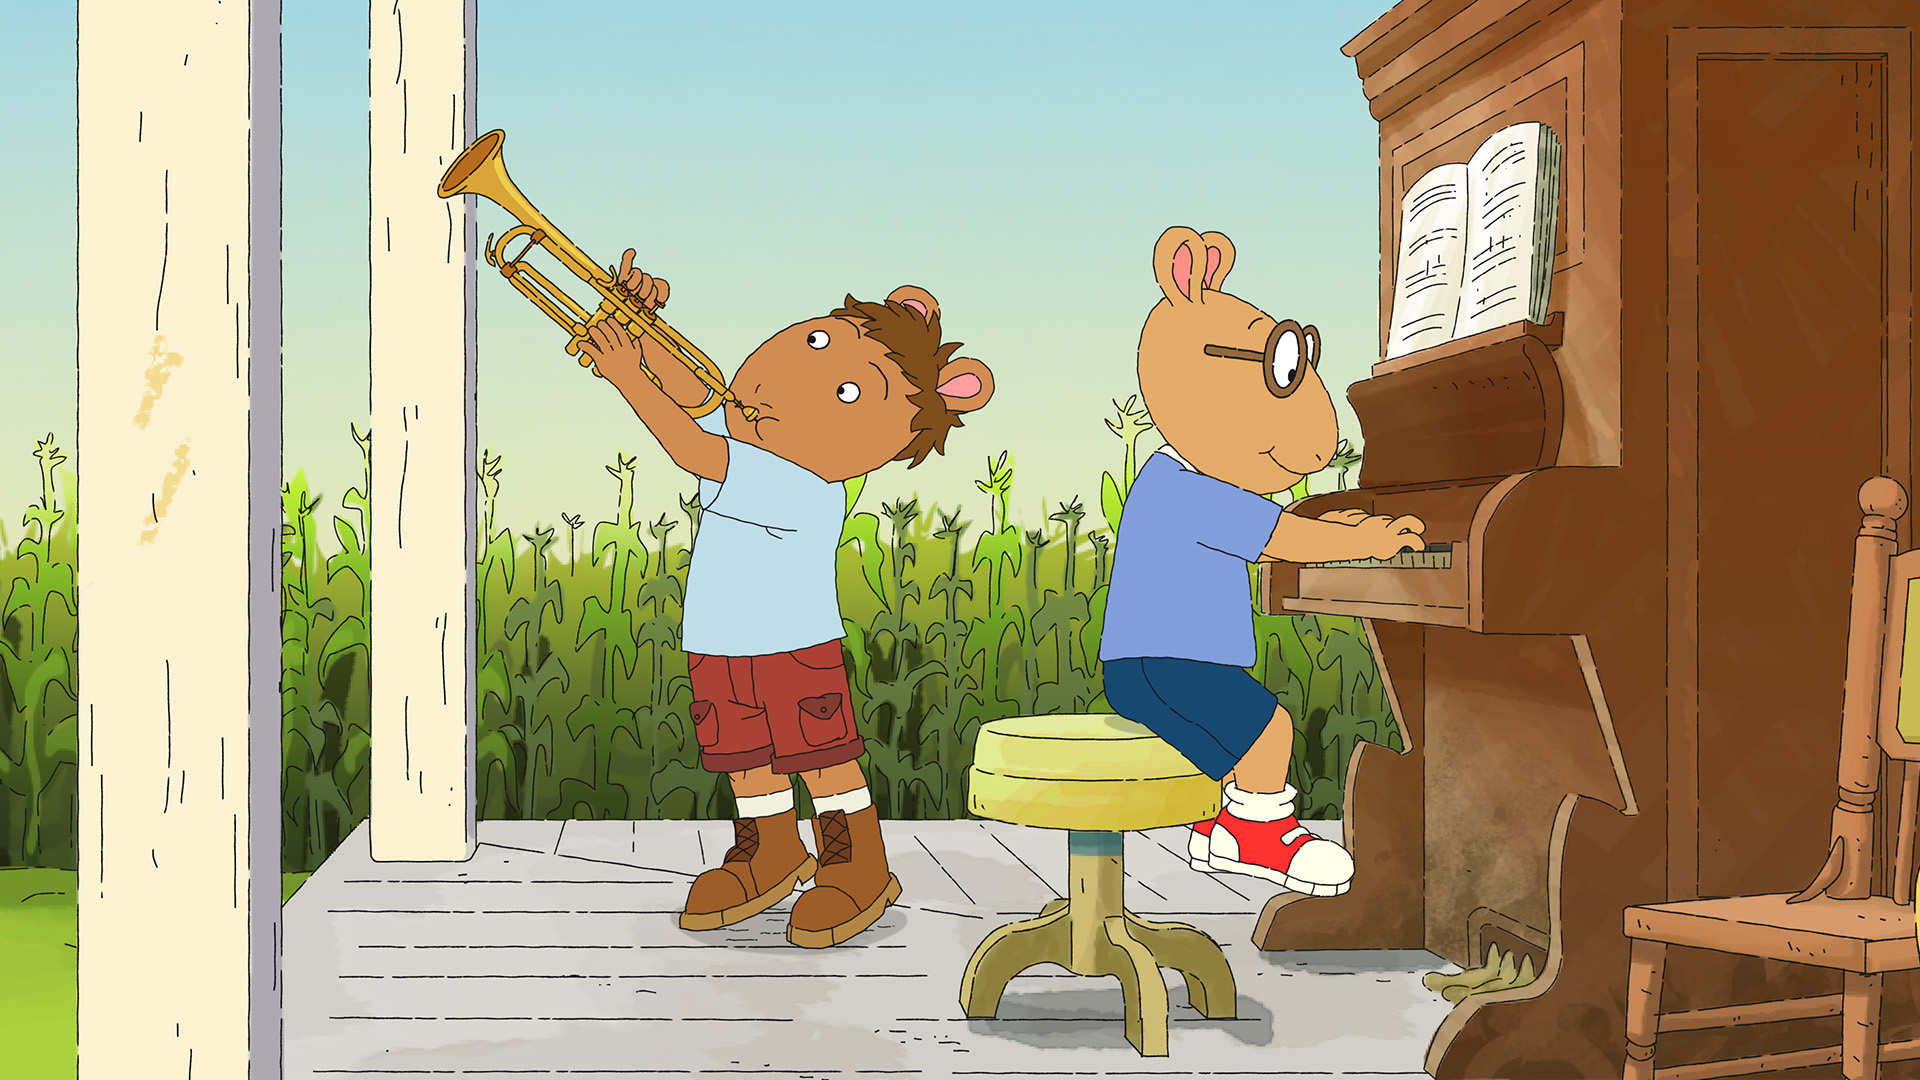 Arthur finds the rhythm in his roots